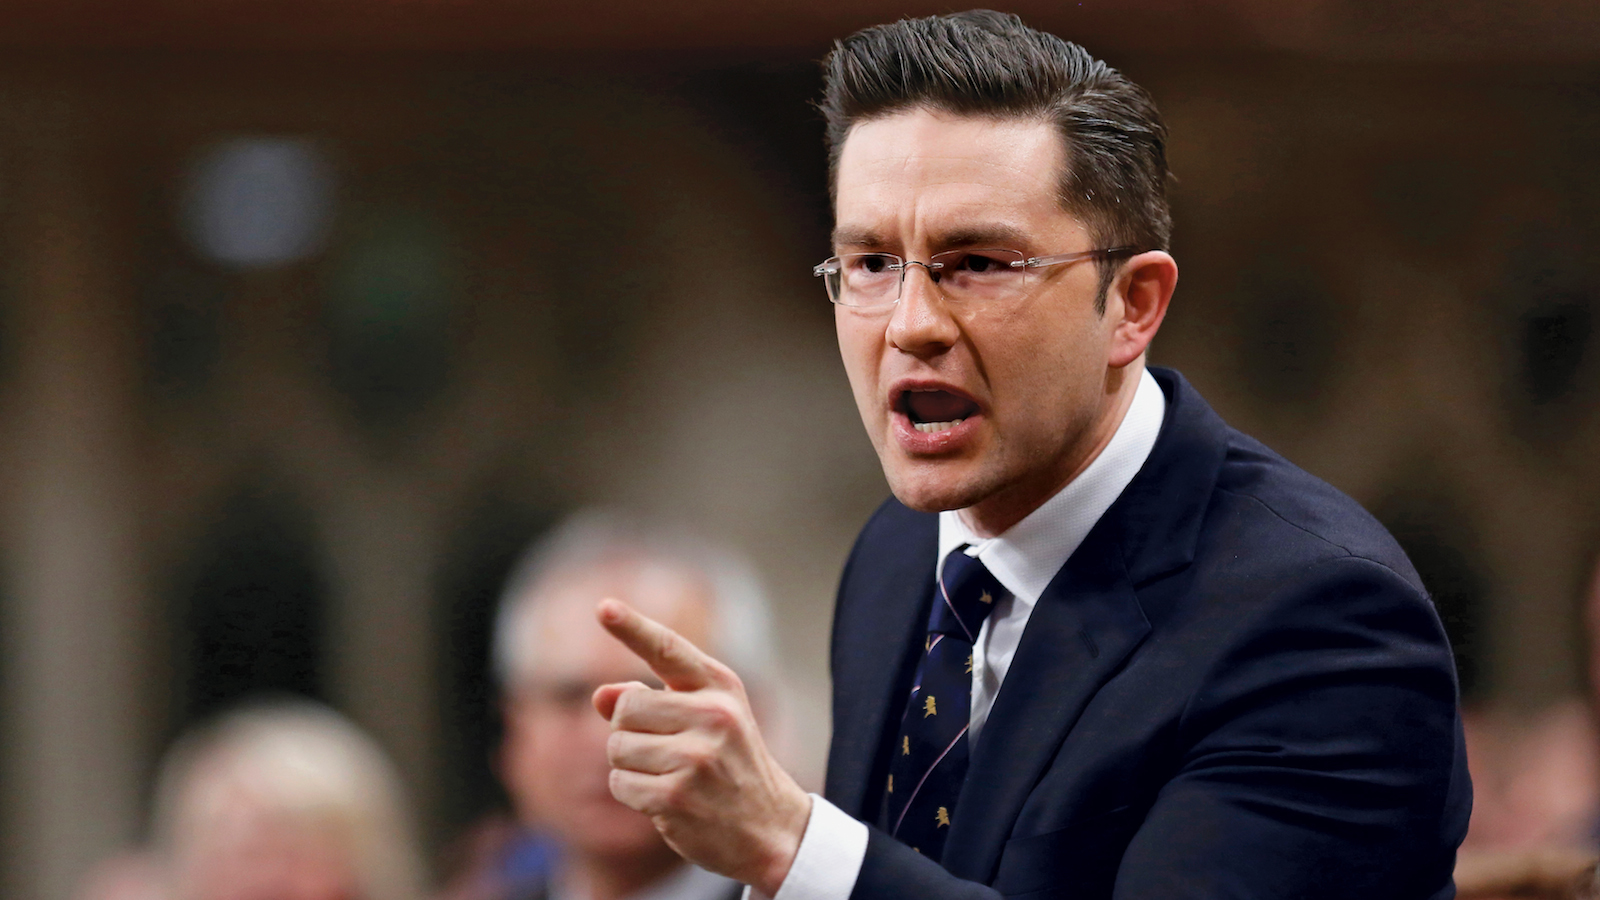 Canada's Minister of State for Democratic Reform Pierre Poilievre. (Chris Wattie/Reuters)